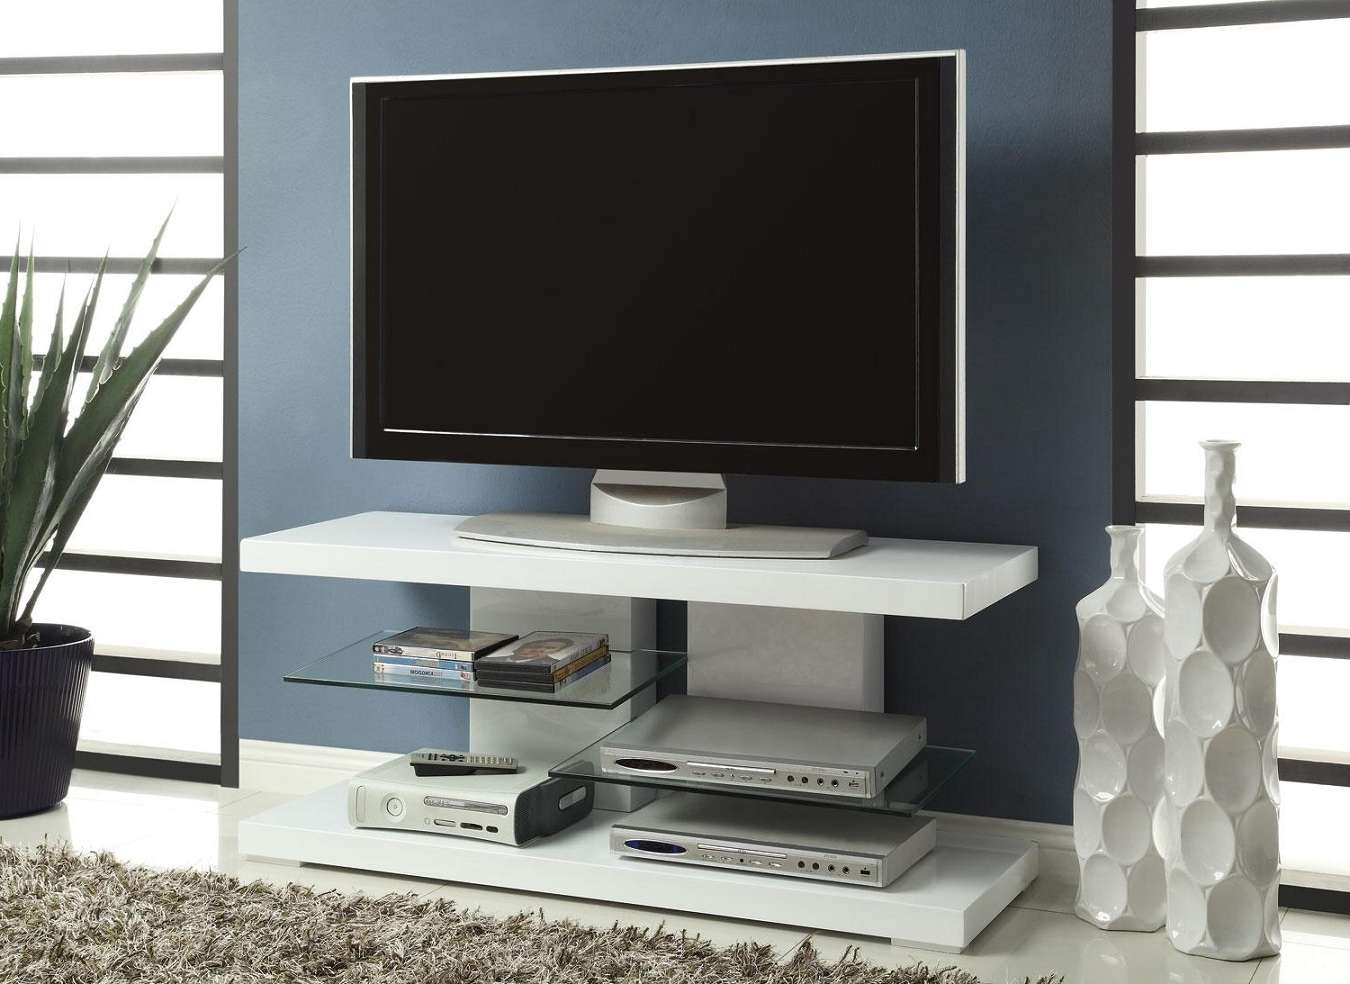 White Painted Plywood Flat Screen Tv Stand With Tempered Glass Regarding White Tv Stands For Flat Screens (View 14 of 15)